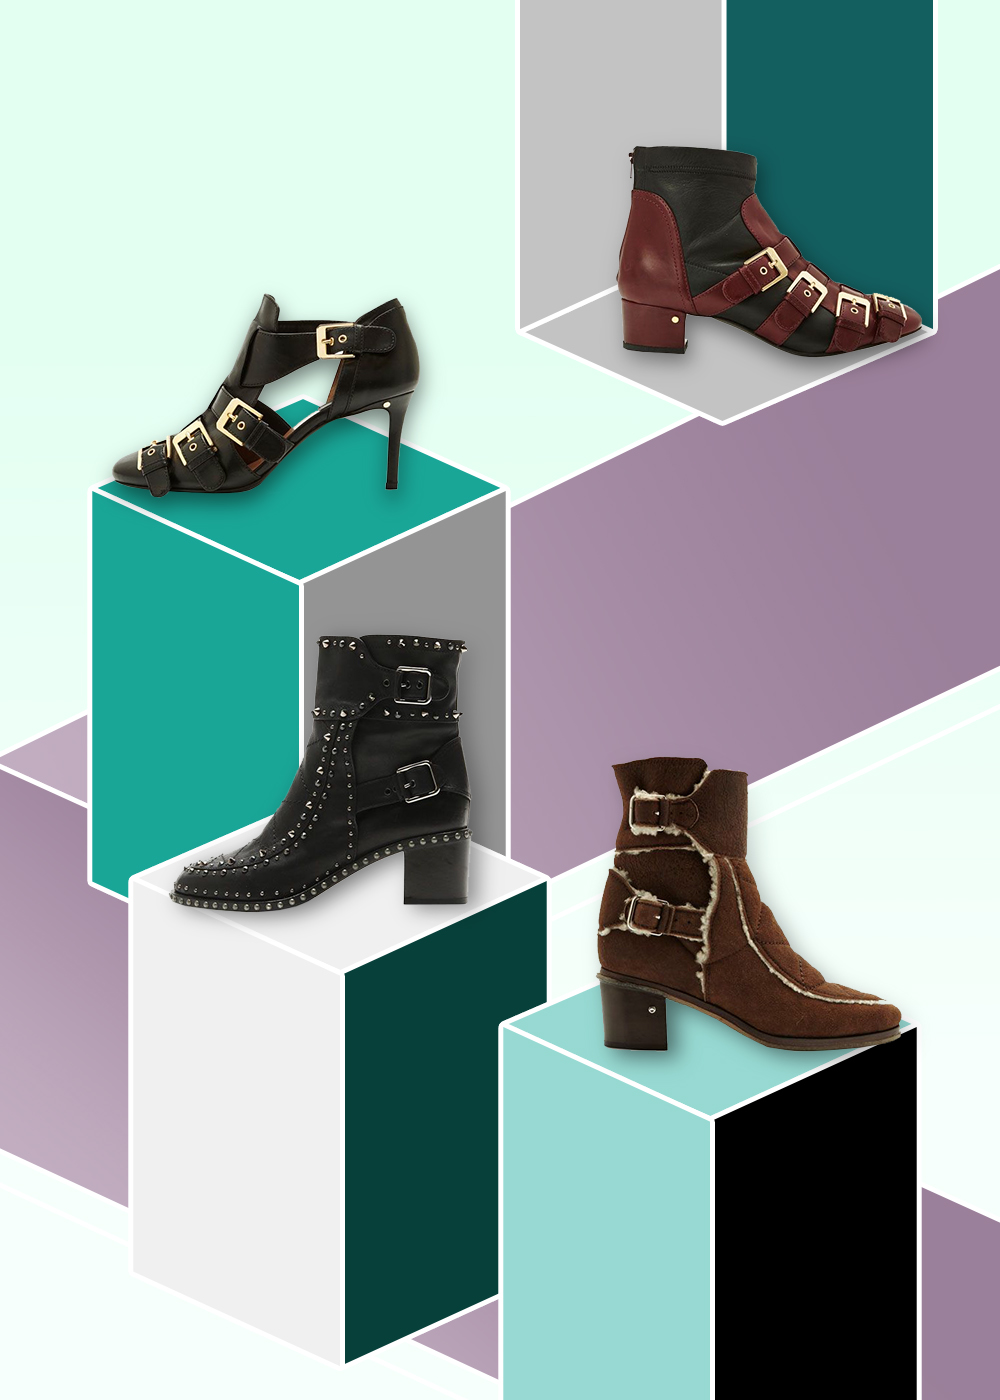 Maison-Mittweg-Designers-Laurence-Dacade-Boots-For-Walking